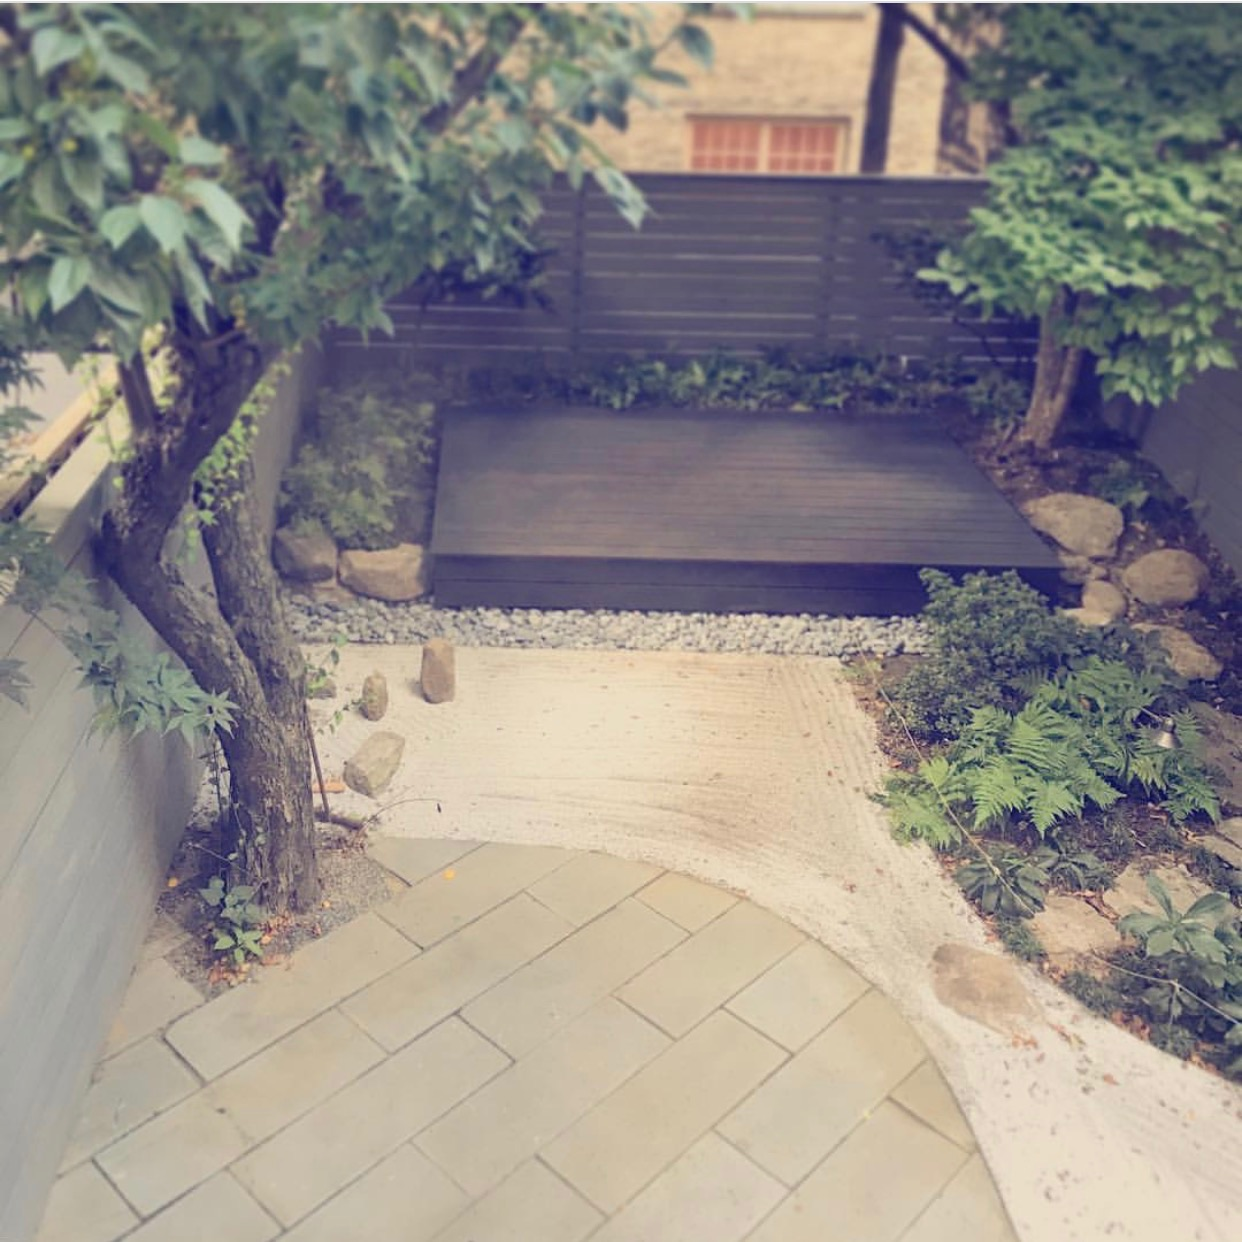 Brownstone backyard, Japanese garden (80% complete -- just waiting on the tea house!)